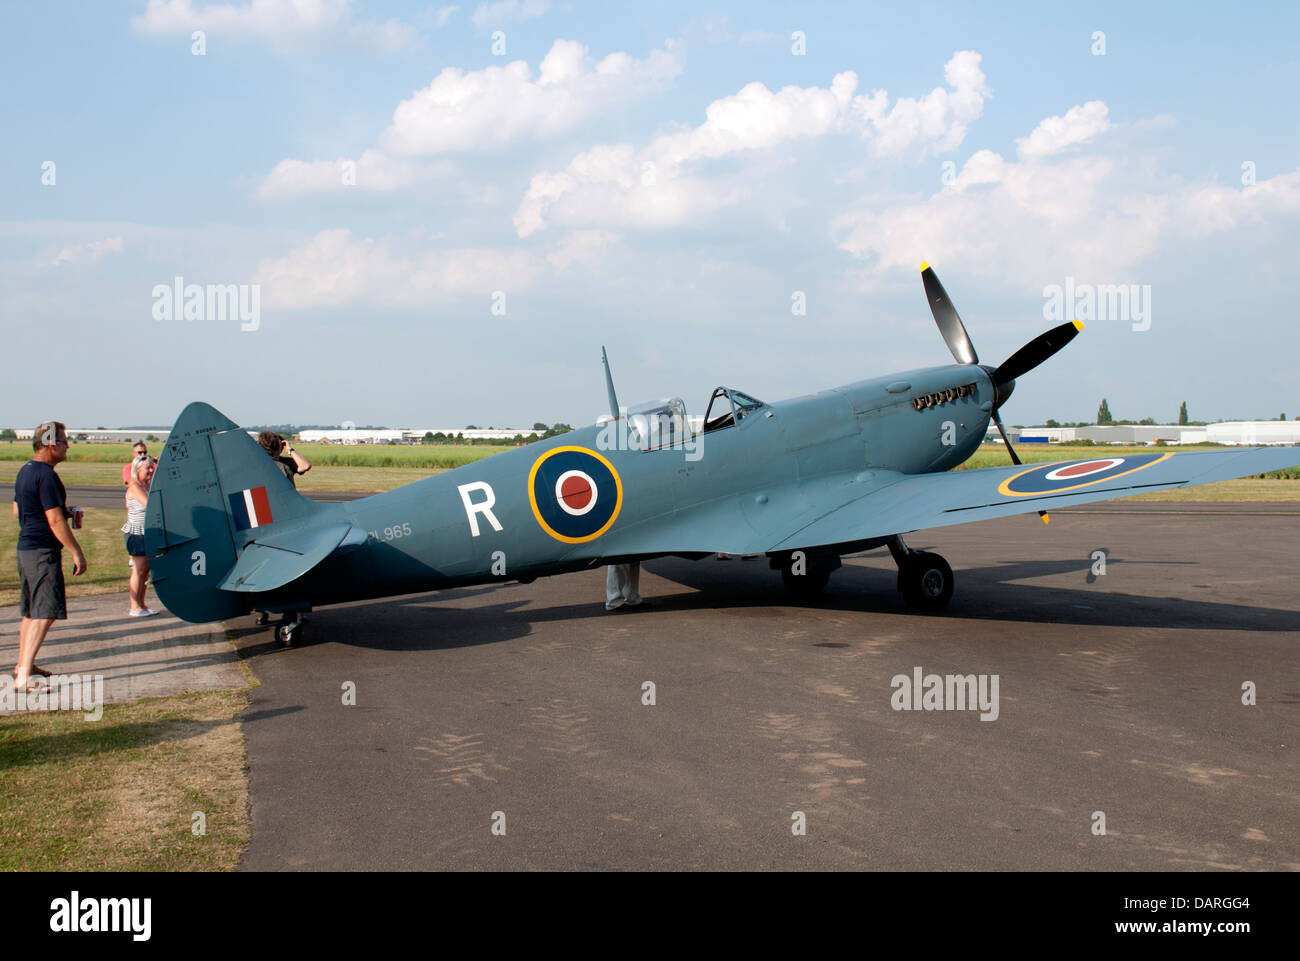 Mk XI Spitfire aircraft at Wellesbourne Airfield, UK - Stock Image